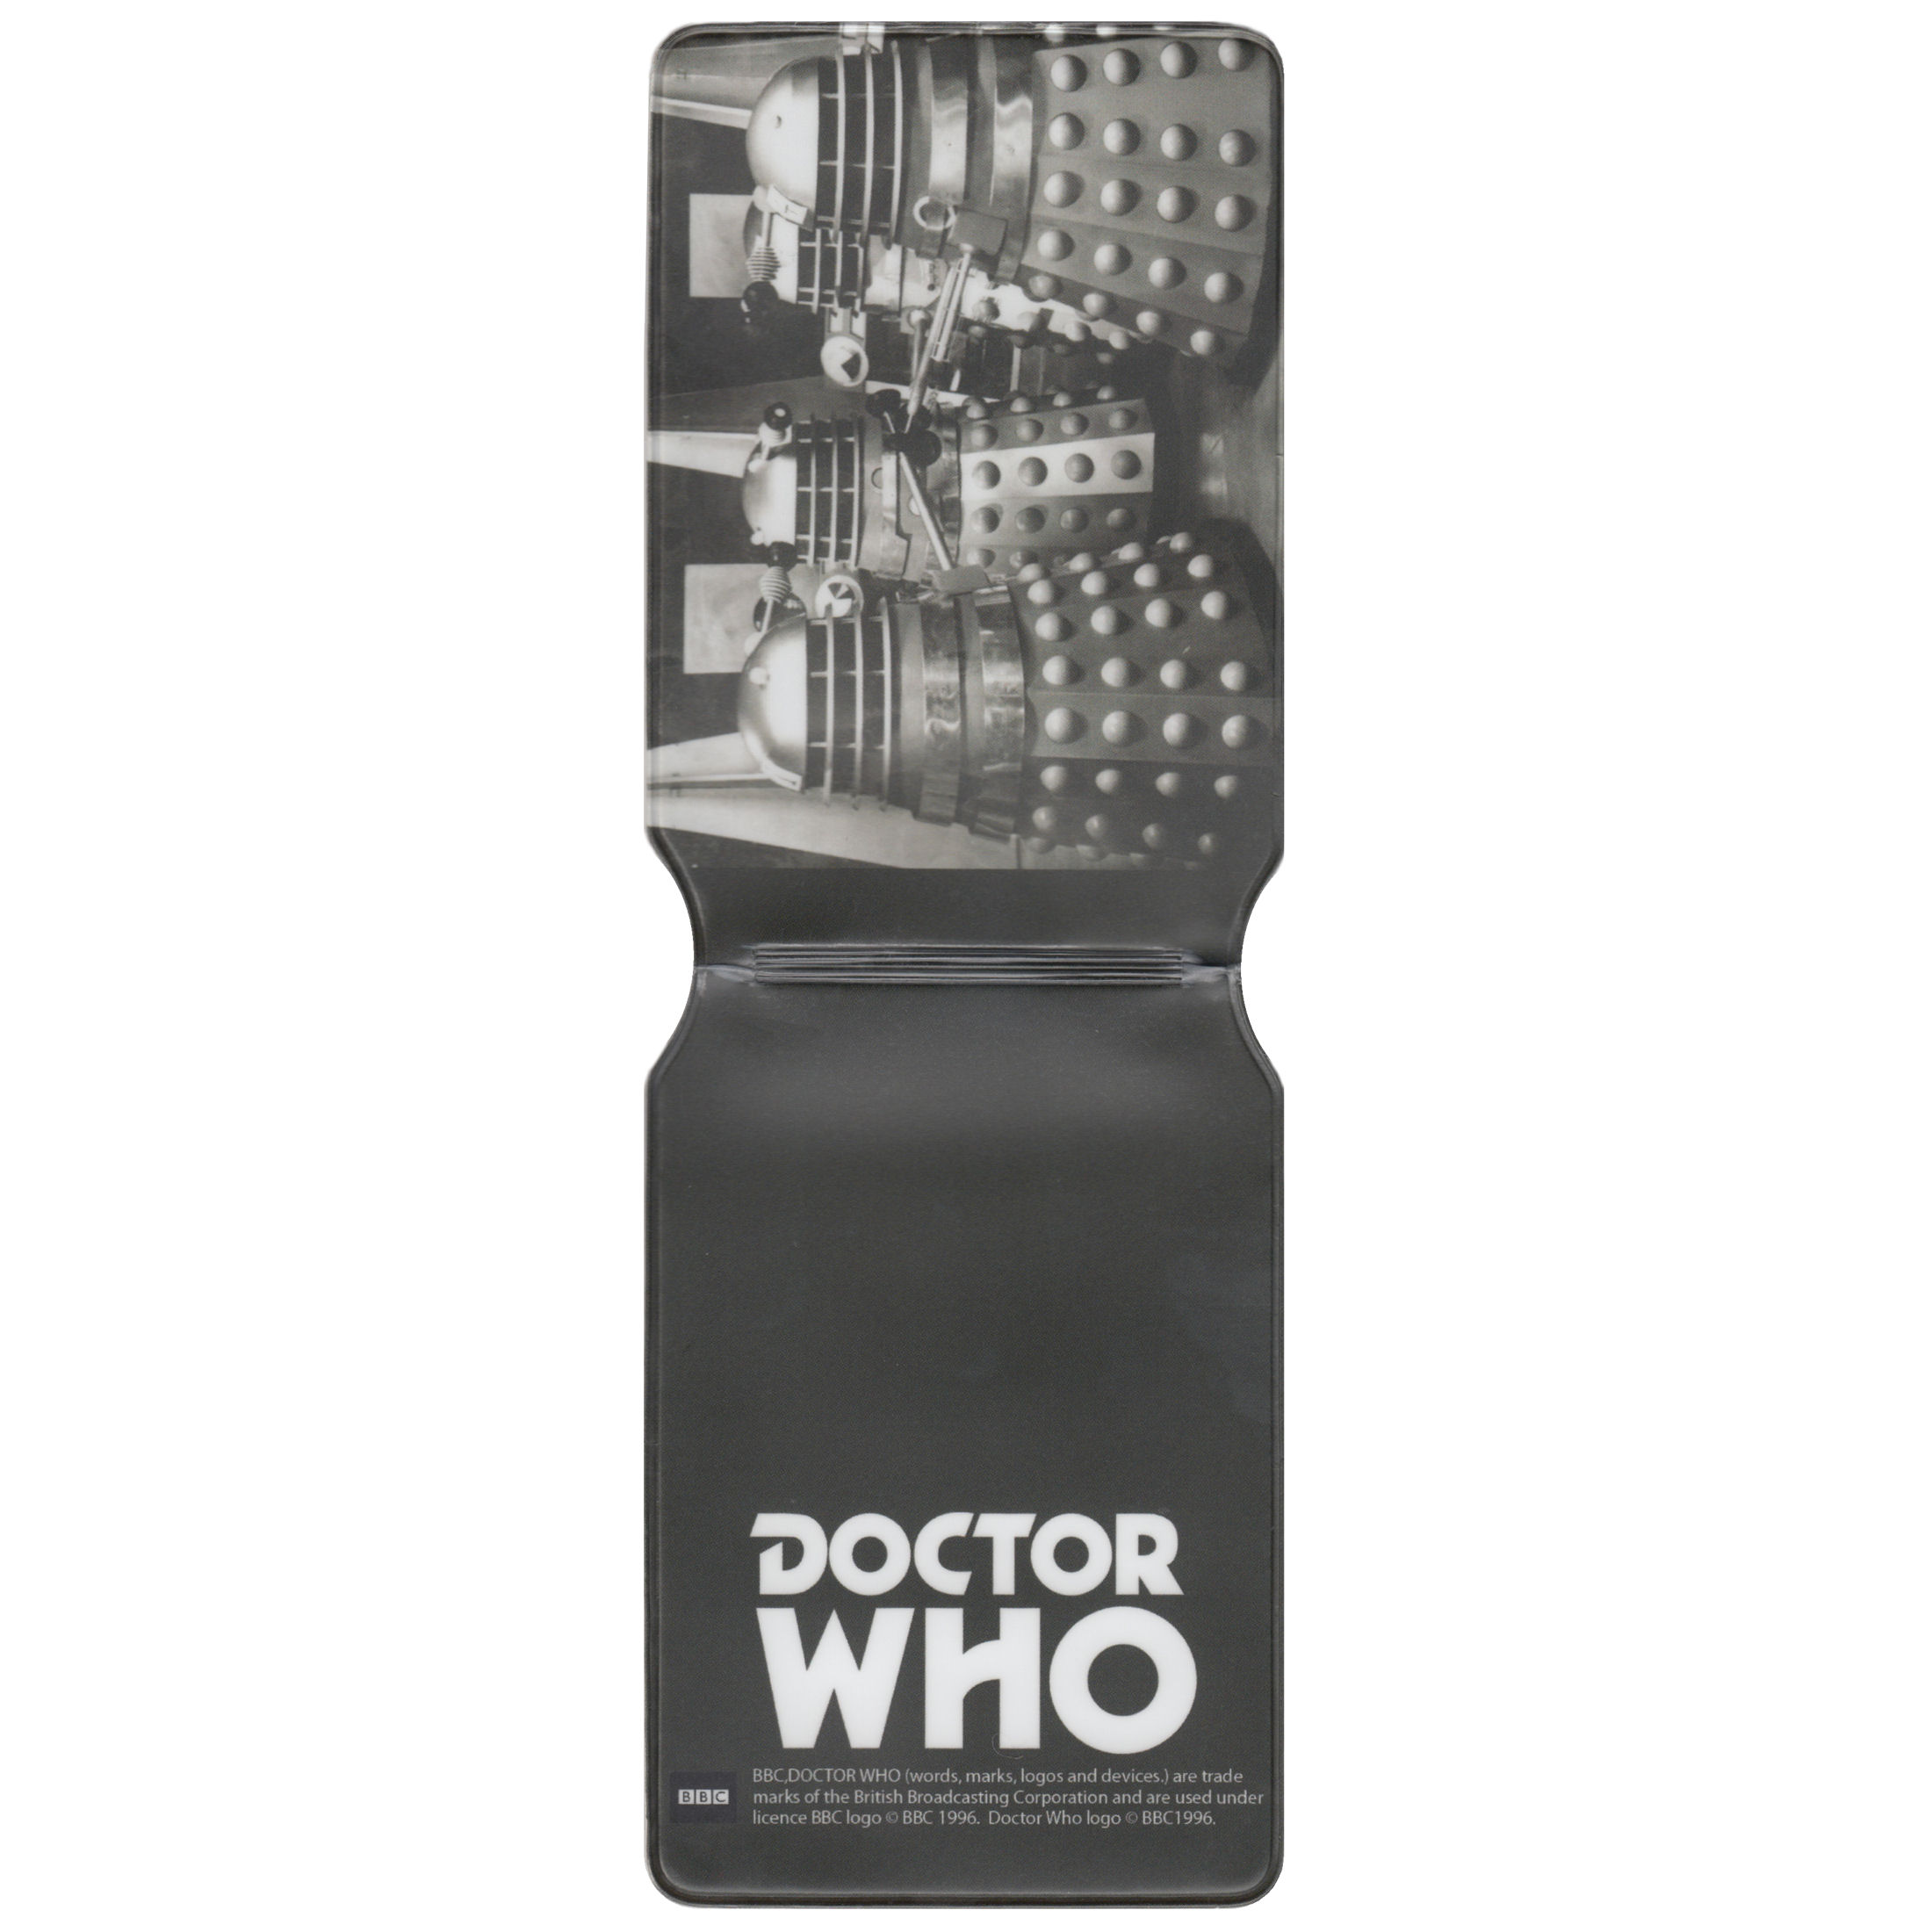 Doctor Who (Classic Dalek Congregate) Travel/Oyster Card Holder